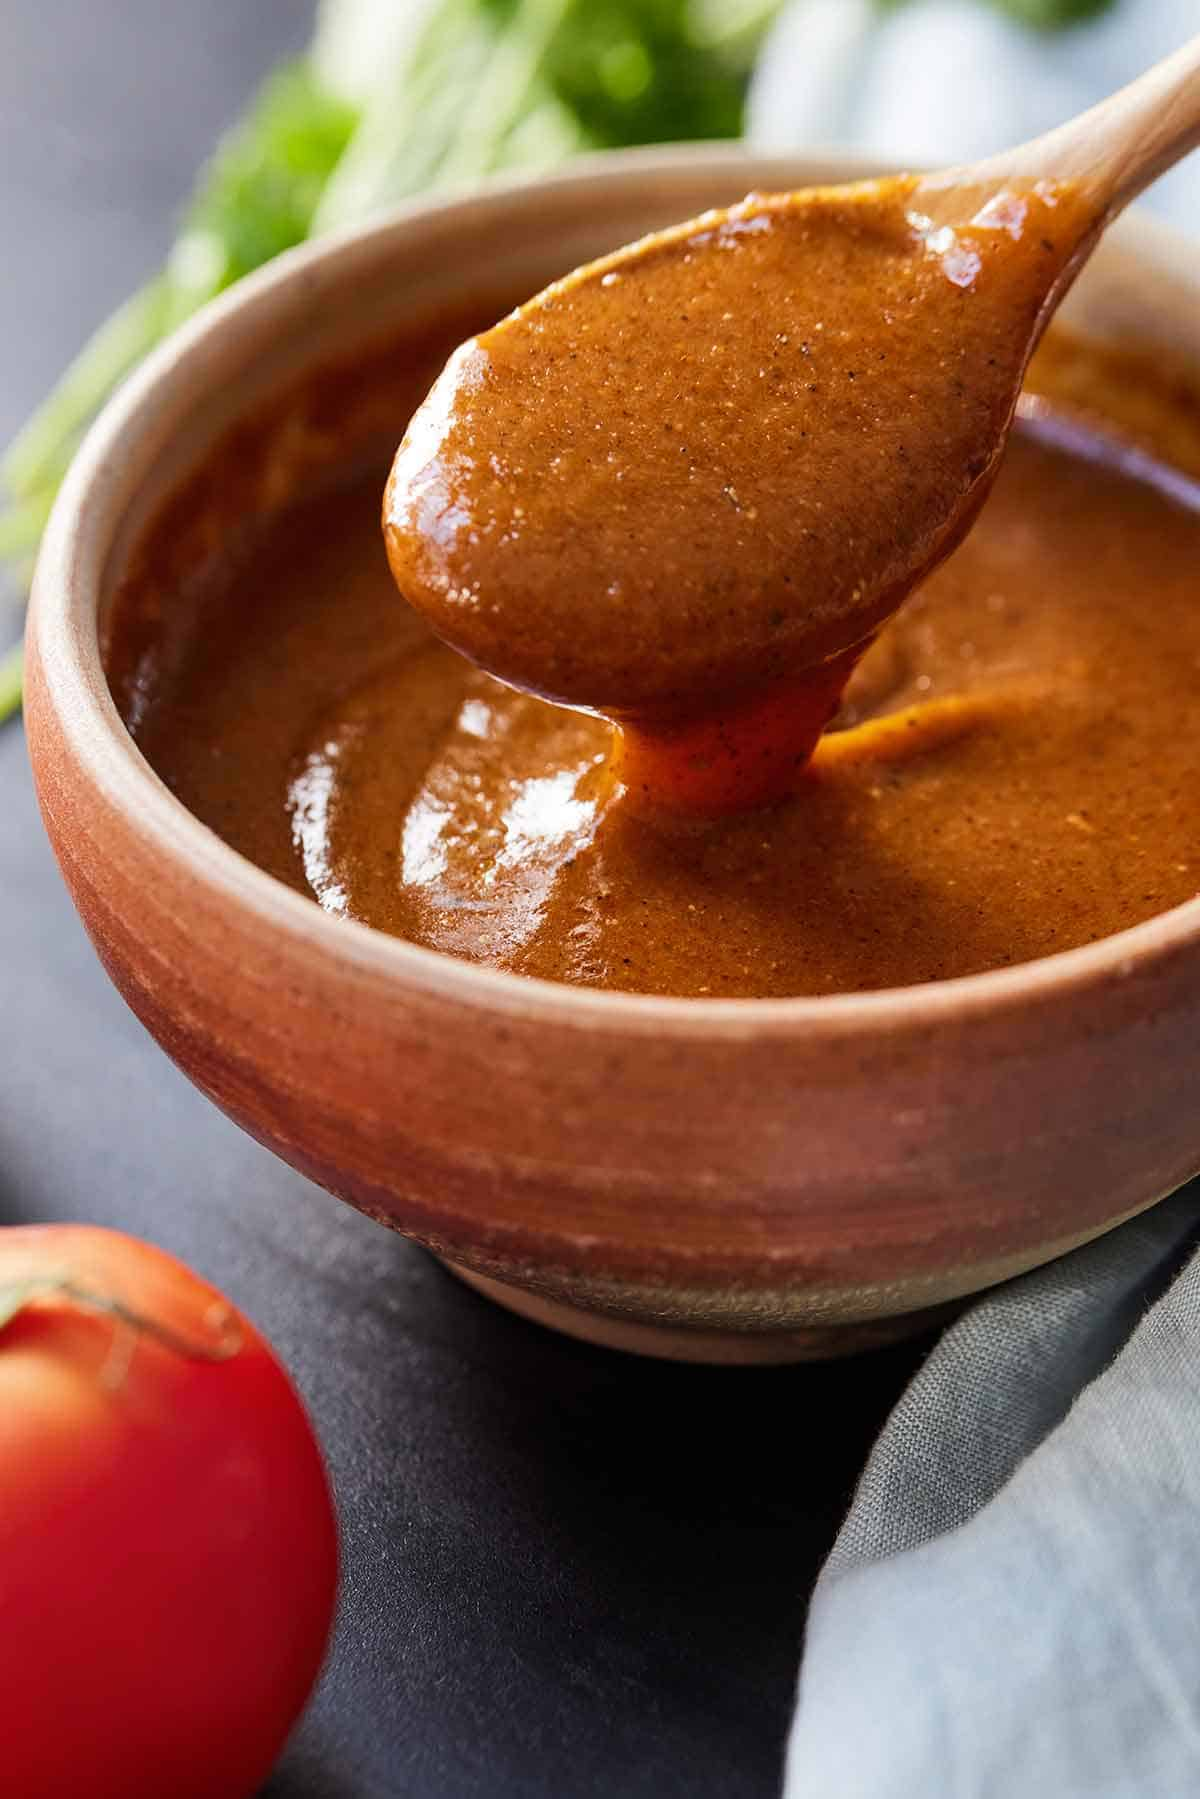 Enchilada sauce dripping off a wooden spoon in a bowl.